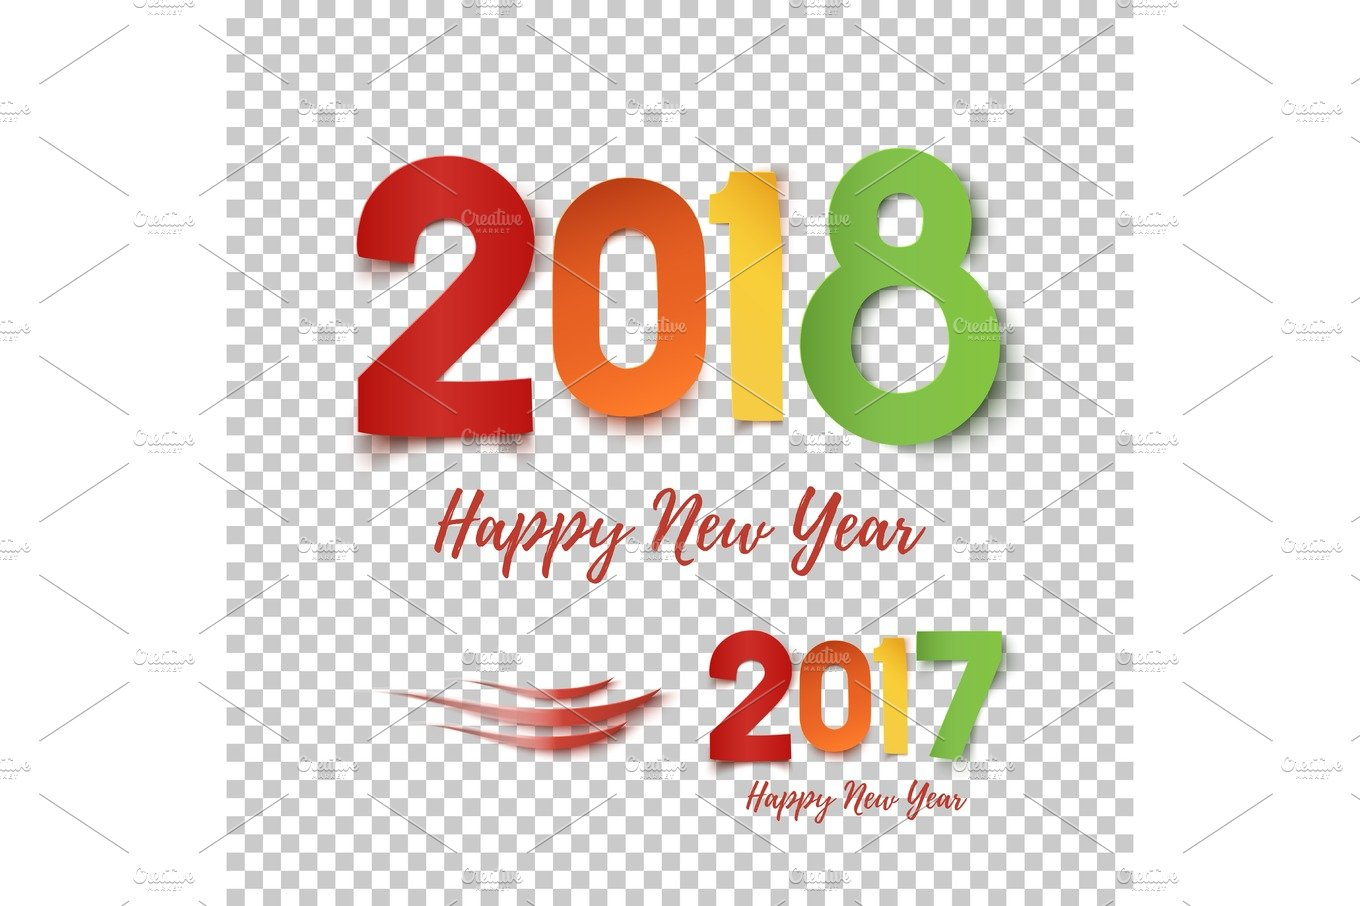 happy new year 2017 2018 template for poster brochure greeting card graphic objects creative market